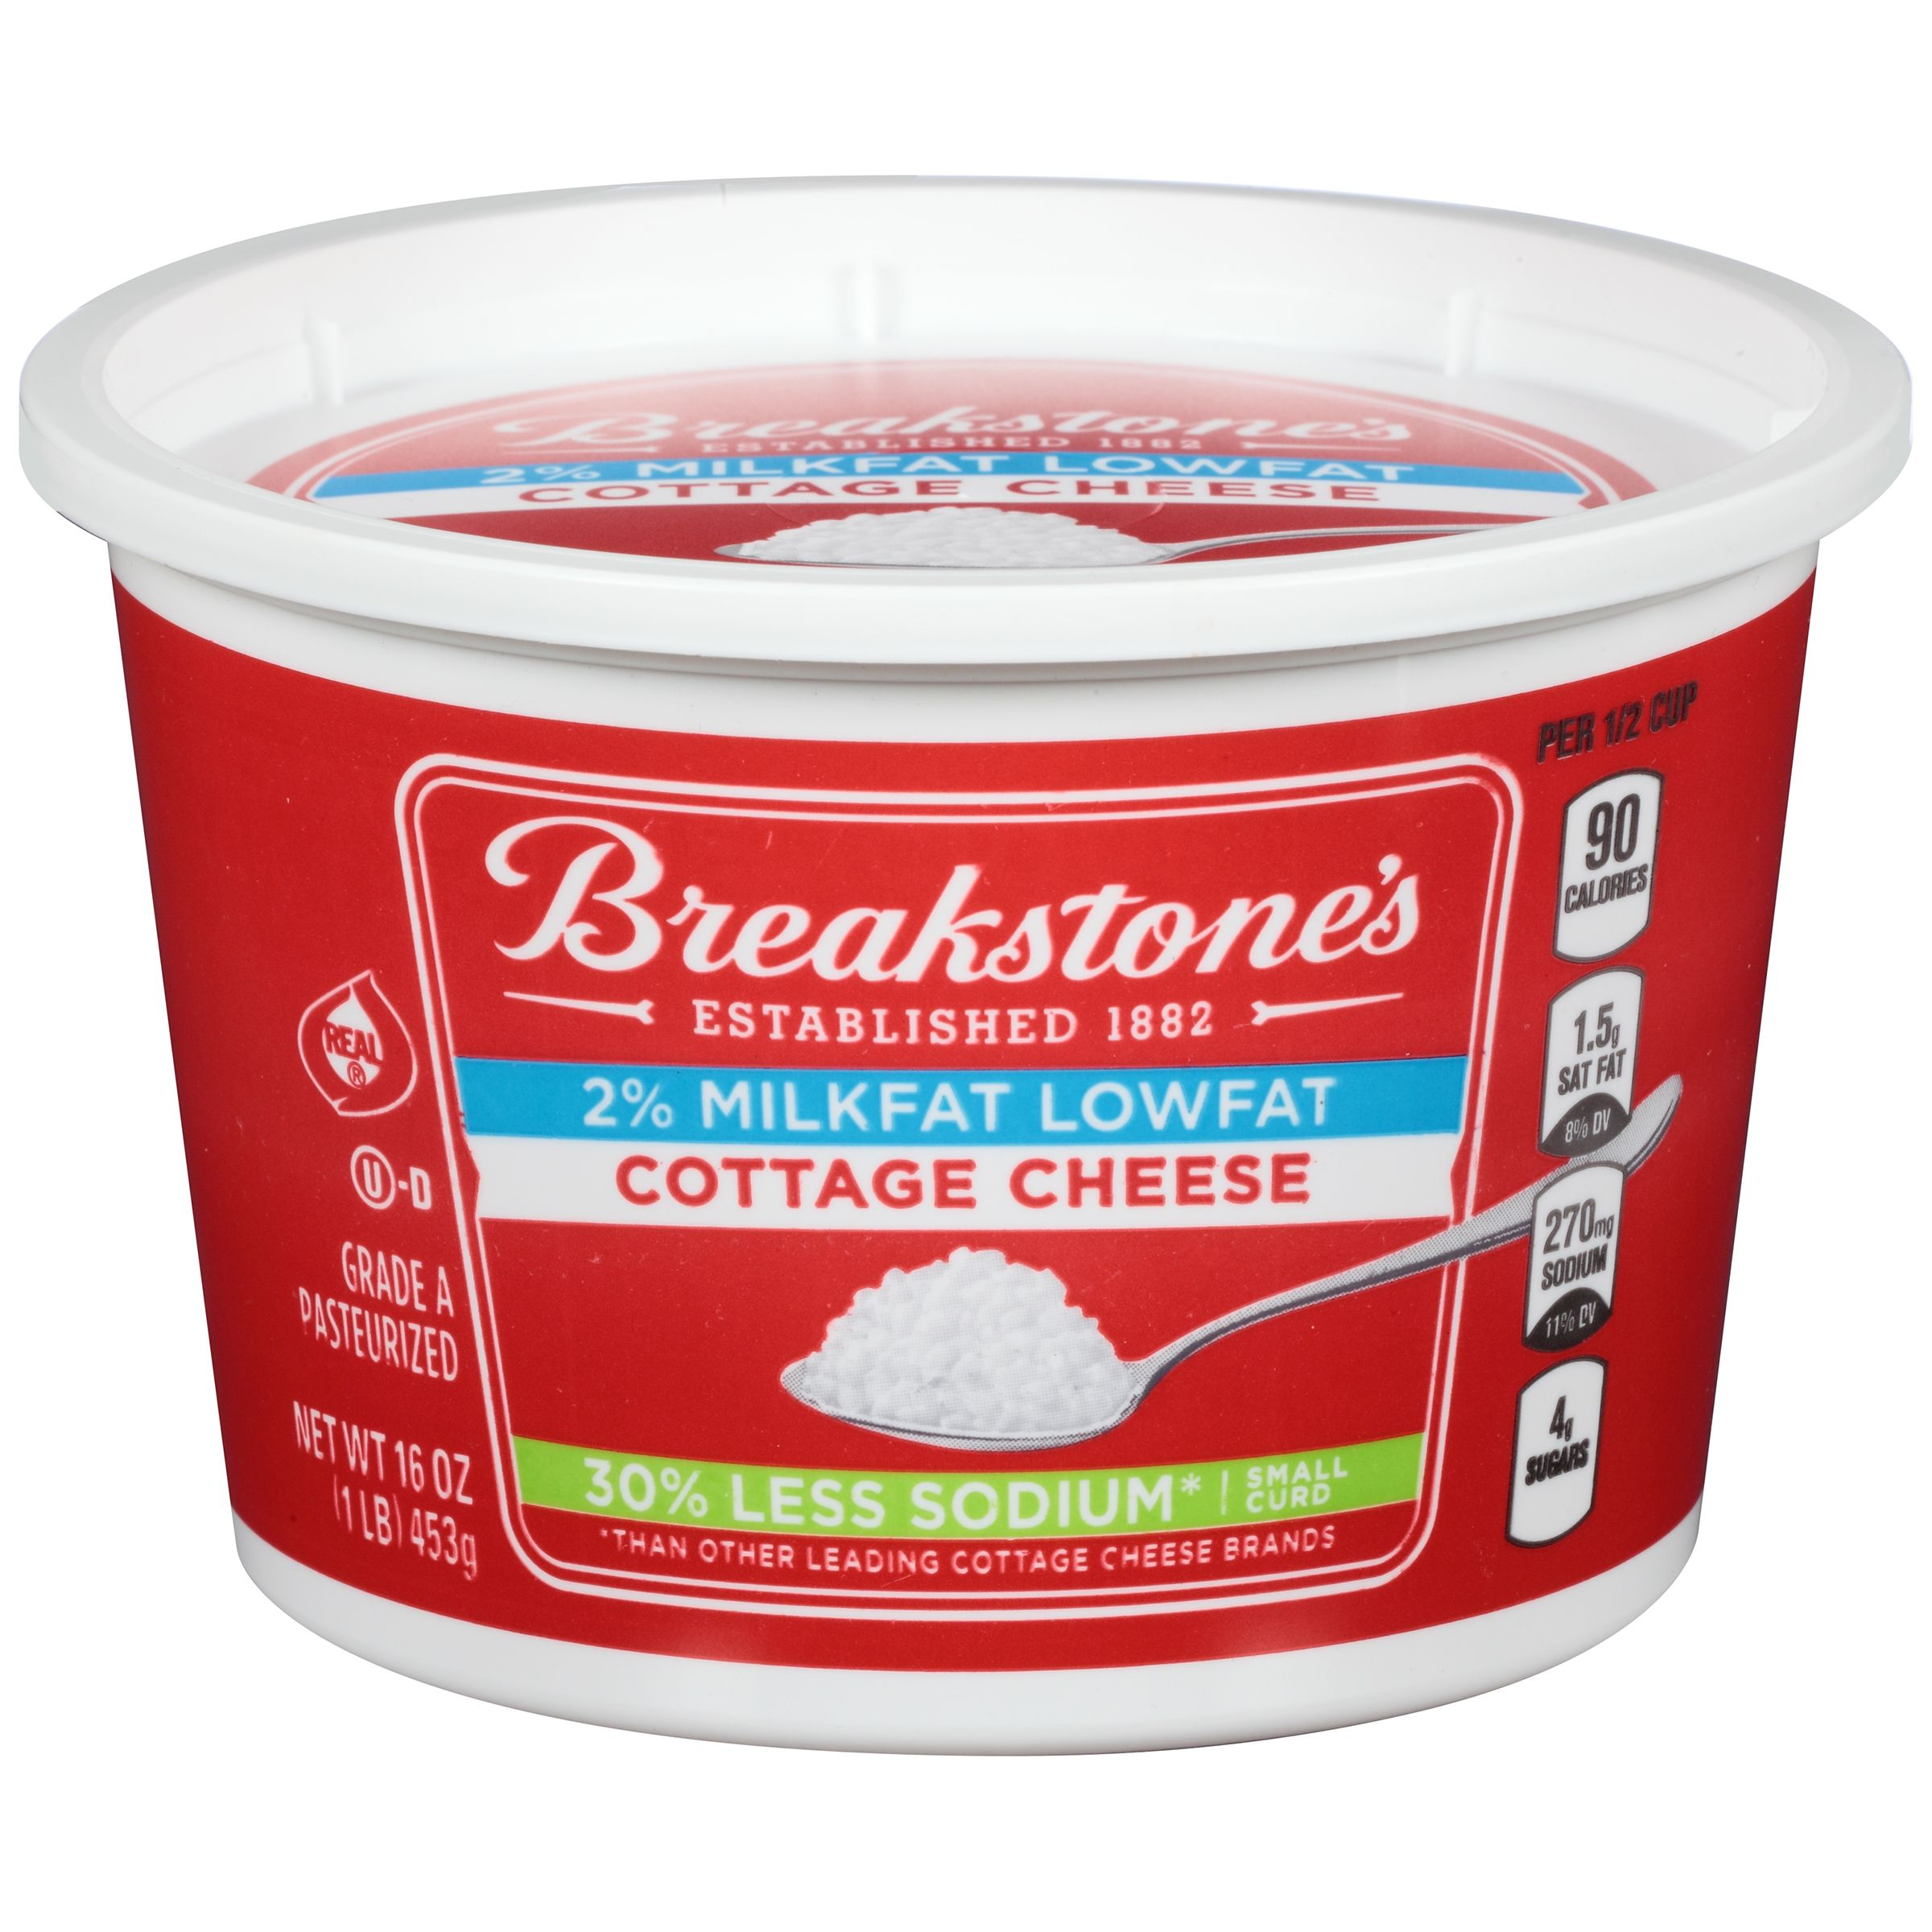 An Excellent Source Of Protein Breakstones Cottage Cheese Helps To Satisfy Your Hunger Breakstone Cottage Cheese Cottage Cheese Cheese